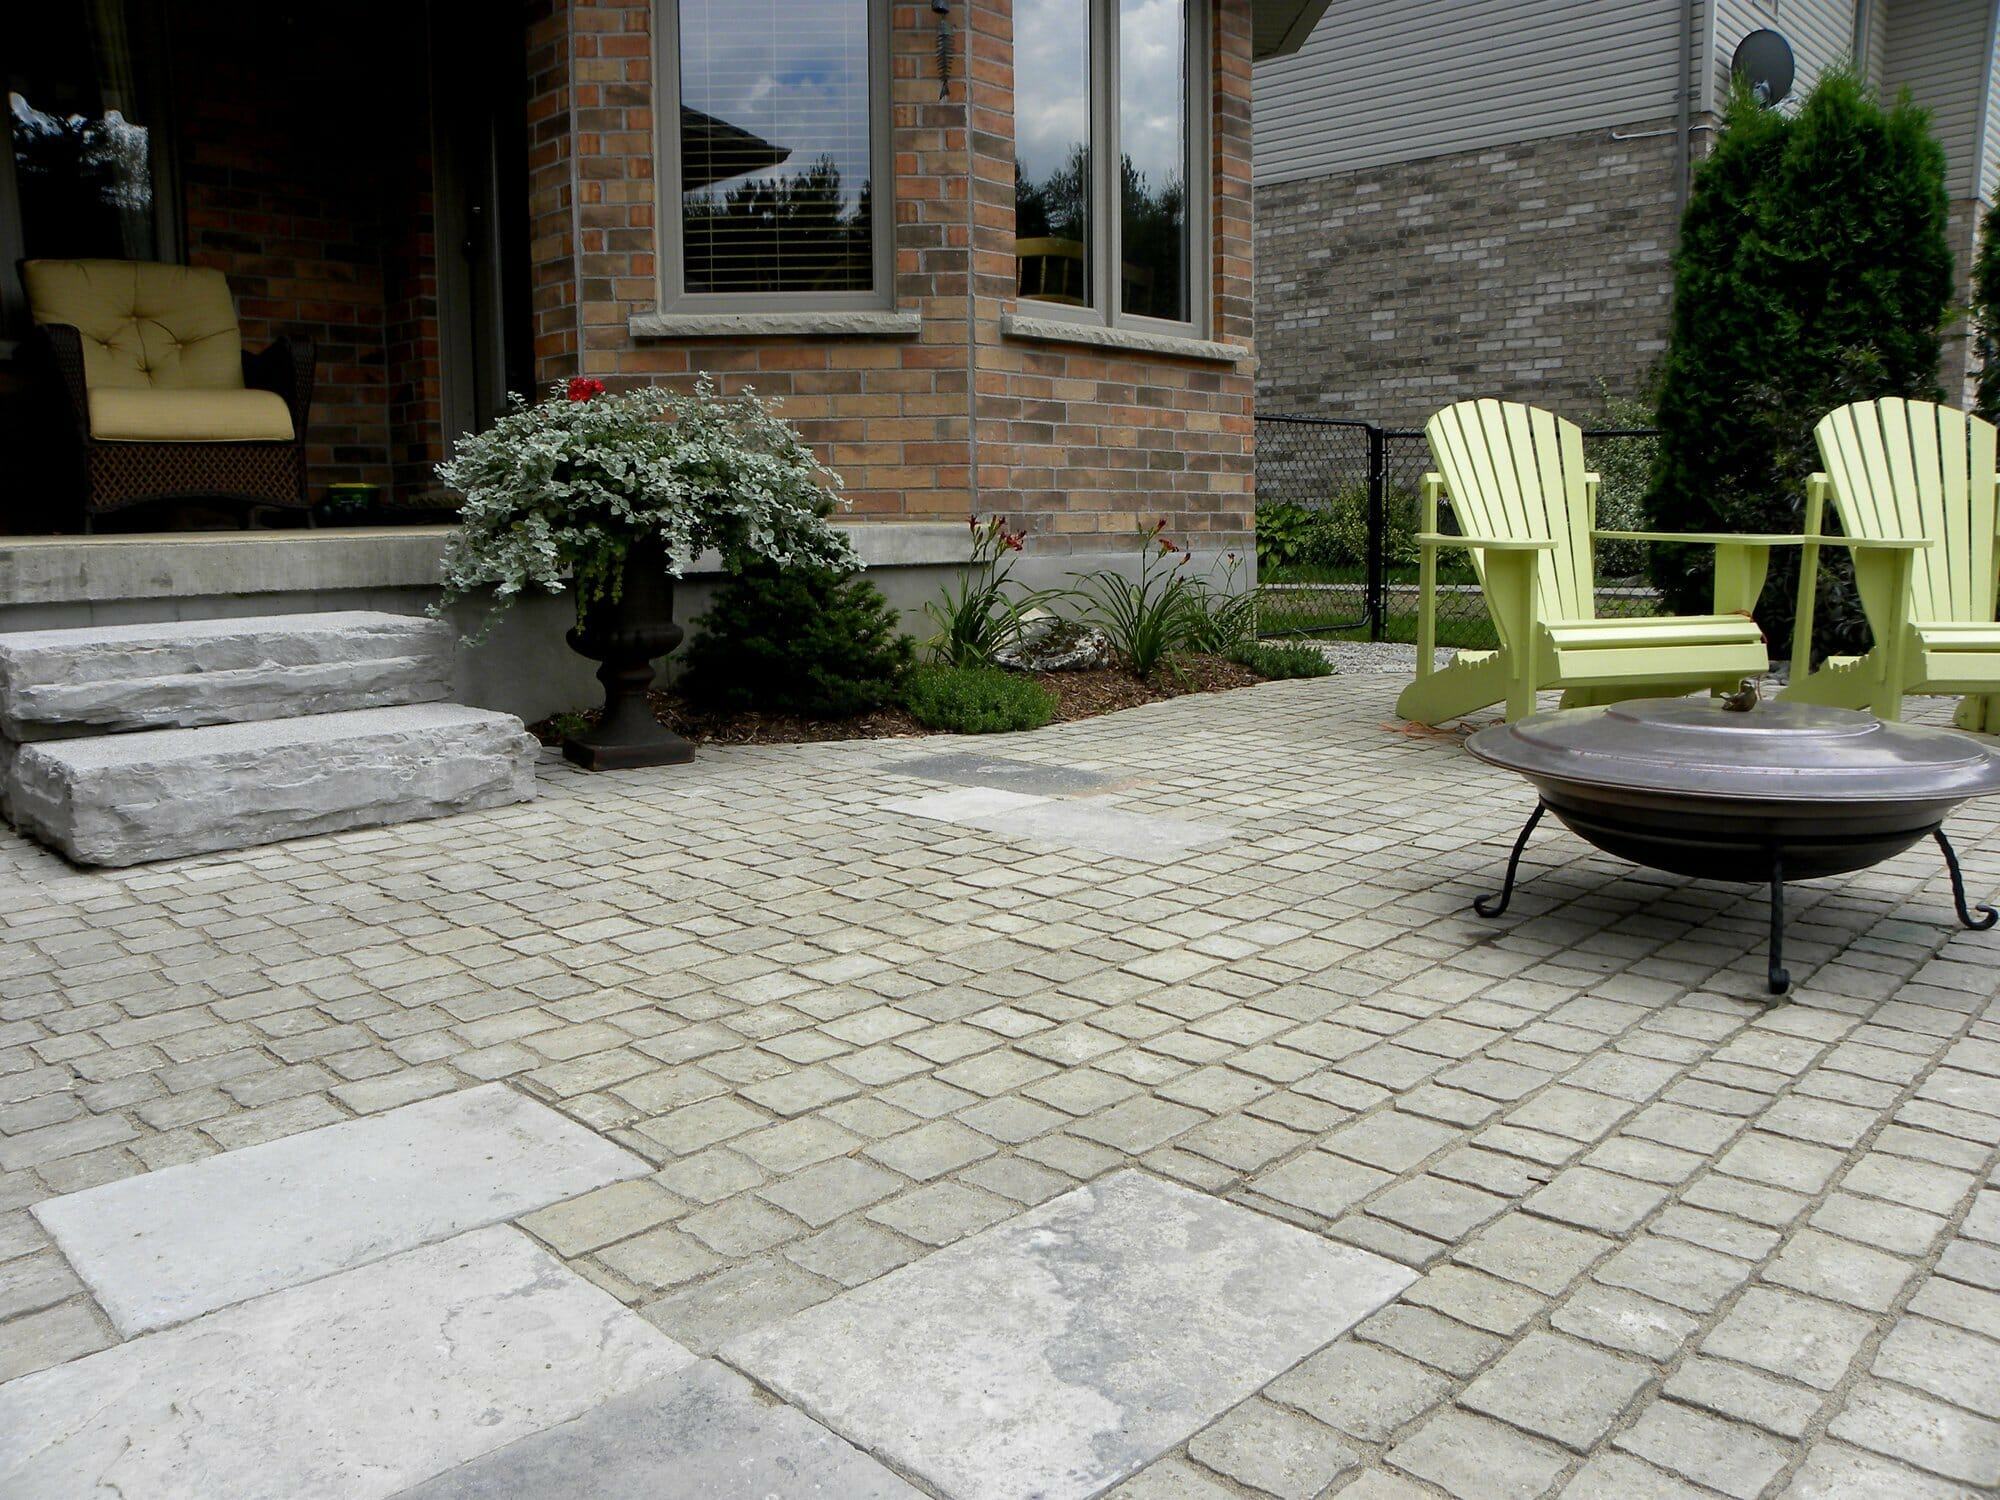 Interlock Patio with Stone Steps - London, Ontario Landscaping & Custom Landscape Design